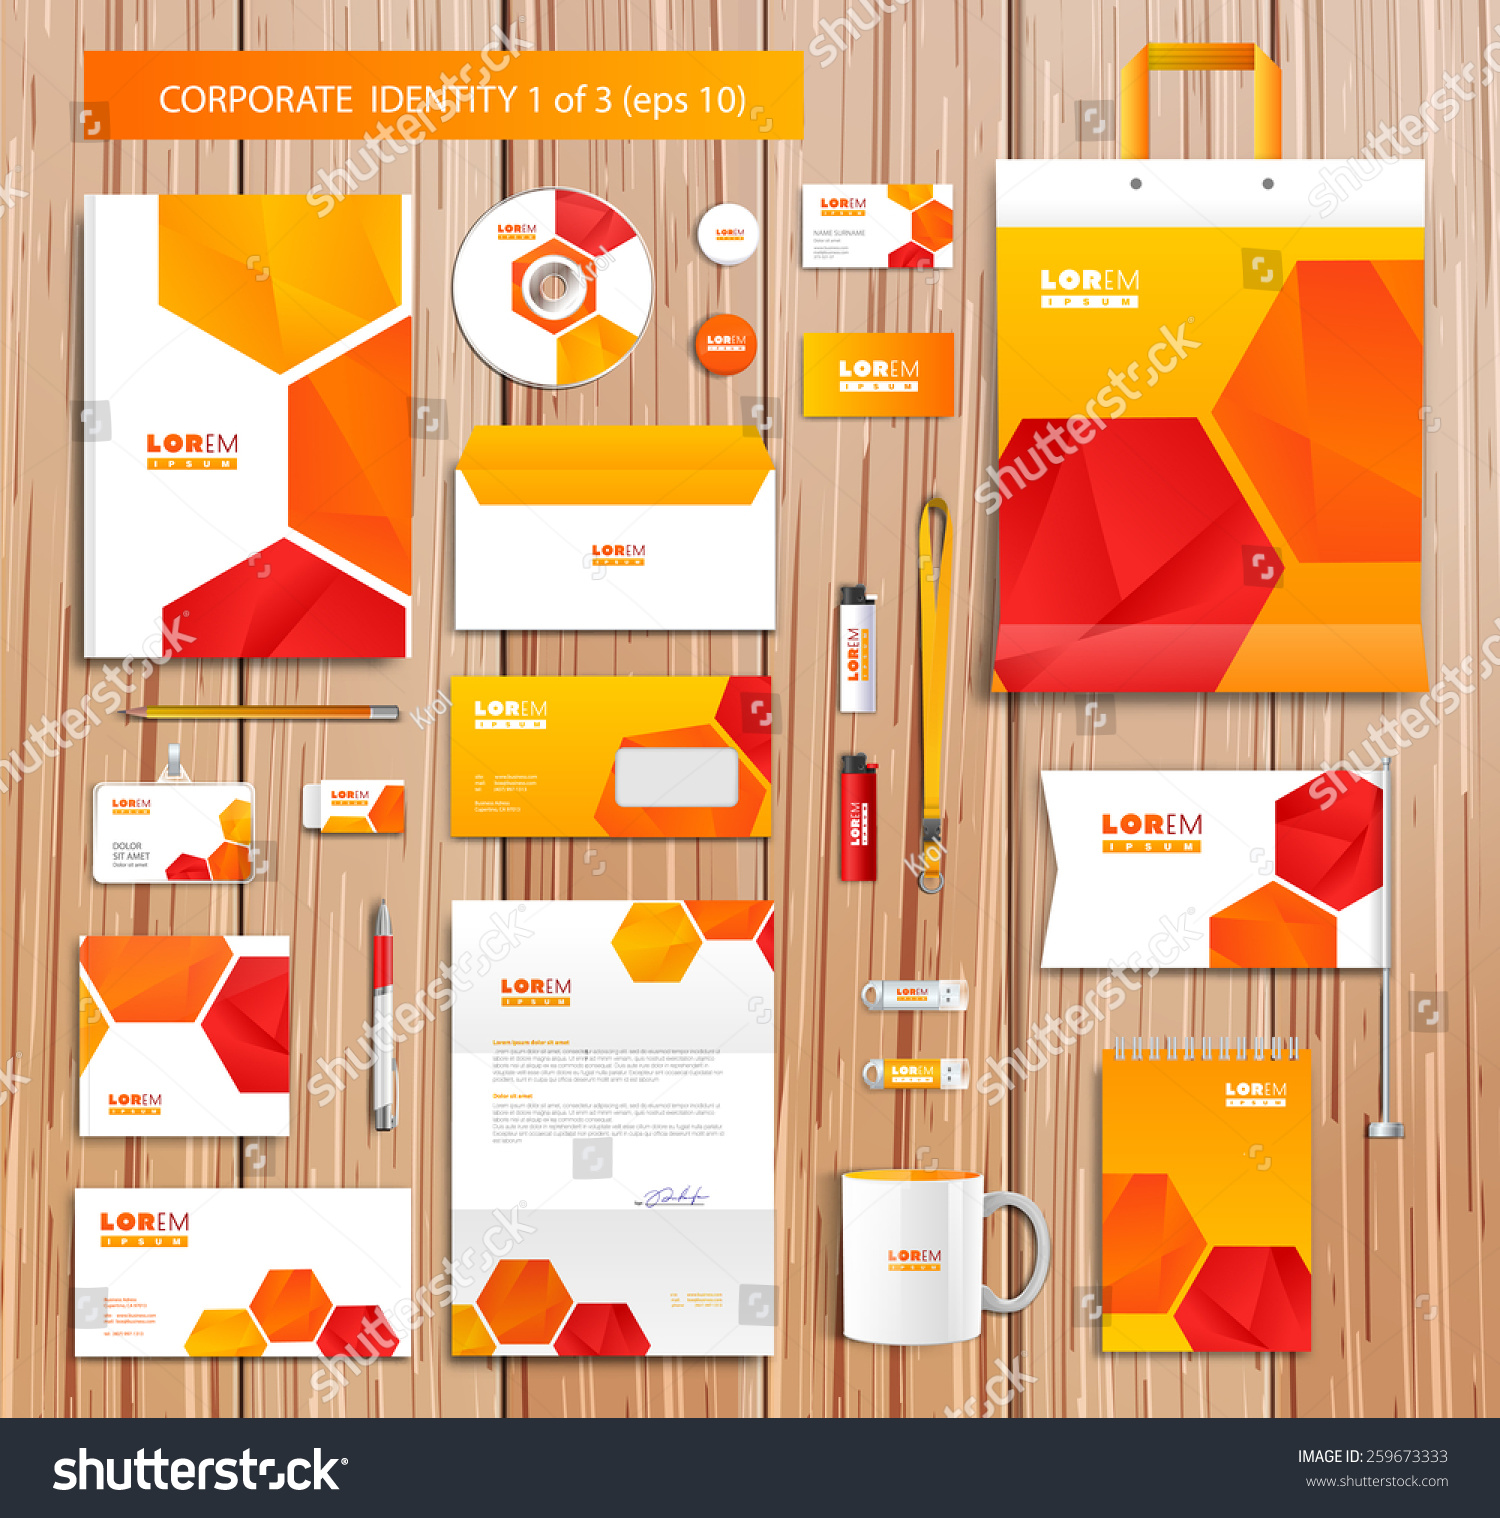 Comfortable 1 Page Brochure Template Thick 1 Year Experience Resume Format For Java Round 1 Year Experience Resume Format For Software Developer 10 Steps To Creating A Resume Young 10 Tips To Making A Resume Bright1099 Form Template White Corporate Id Template Design Orange Stock Vector 259673333 ..